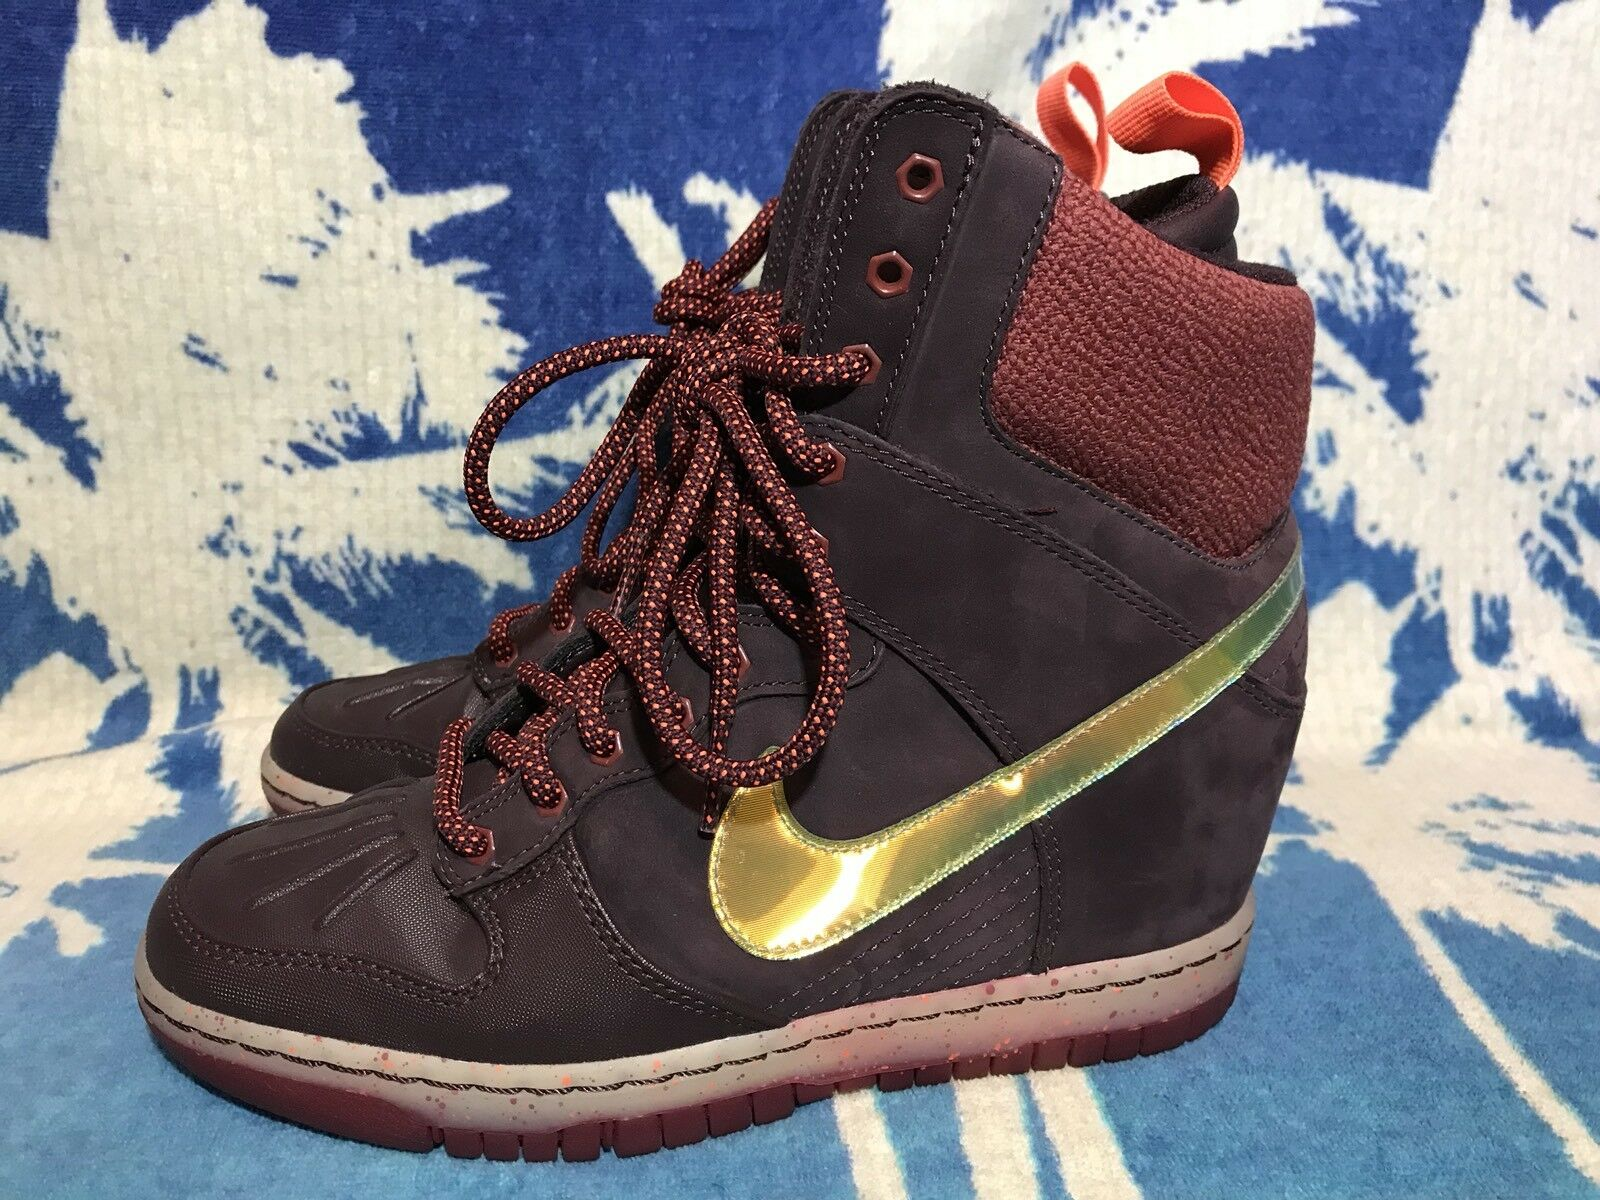 Nike WMNS Dunk Sky Hi SNKRBT 2.0 Price reduction